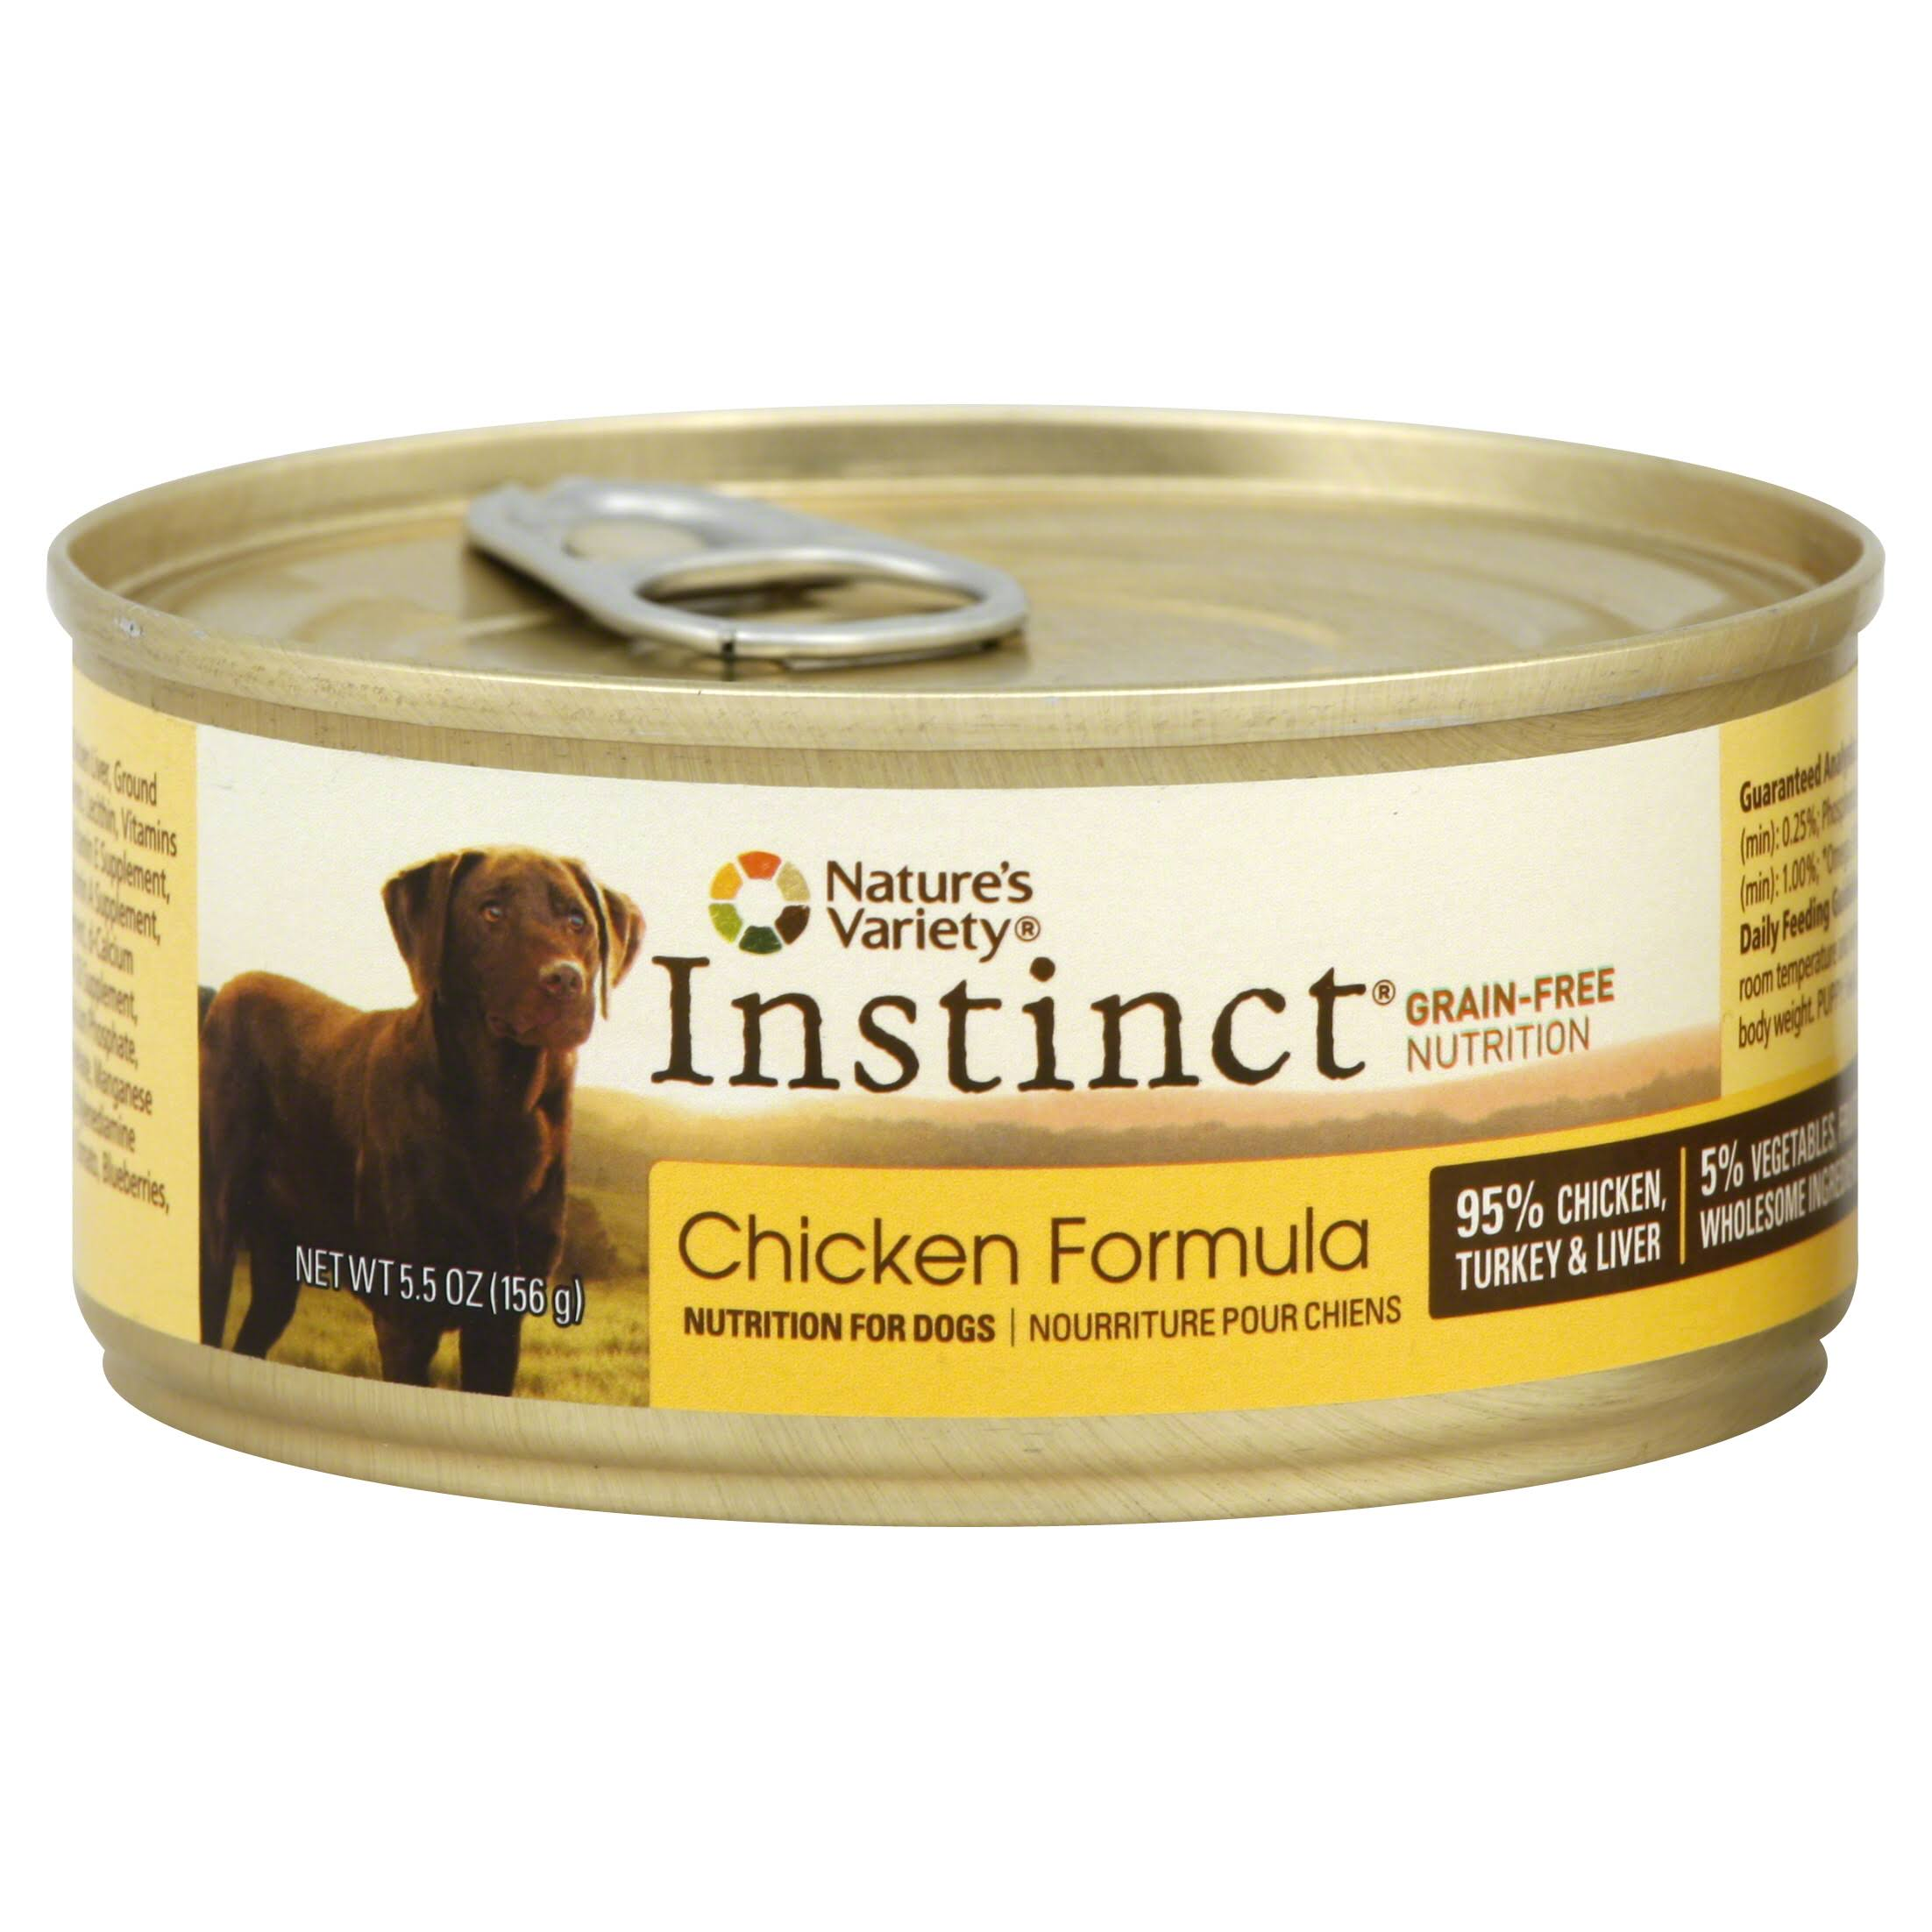 Nature's Variety Instinct Grain-Free Canned Dog Food - Chicken, 5.5 Oz